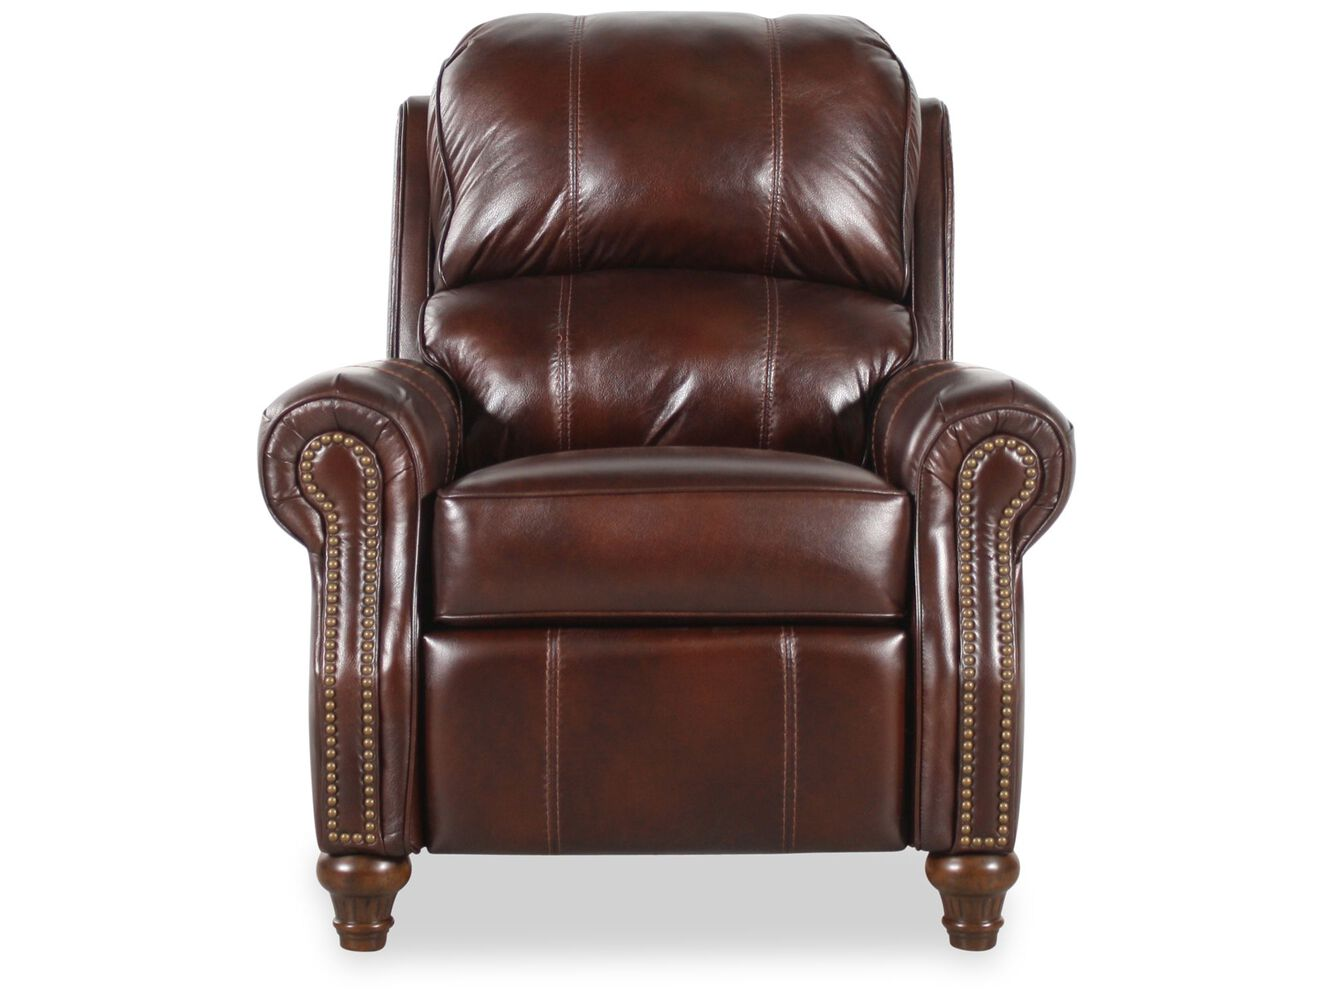 height low recliner item trim leg high width ashebrookehigh barcalounger ashebrooke products nail head threshold with